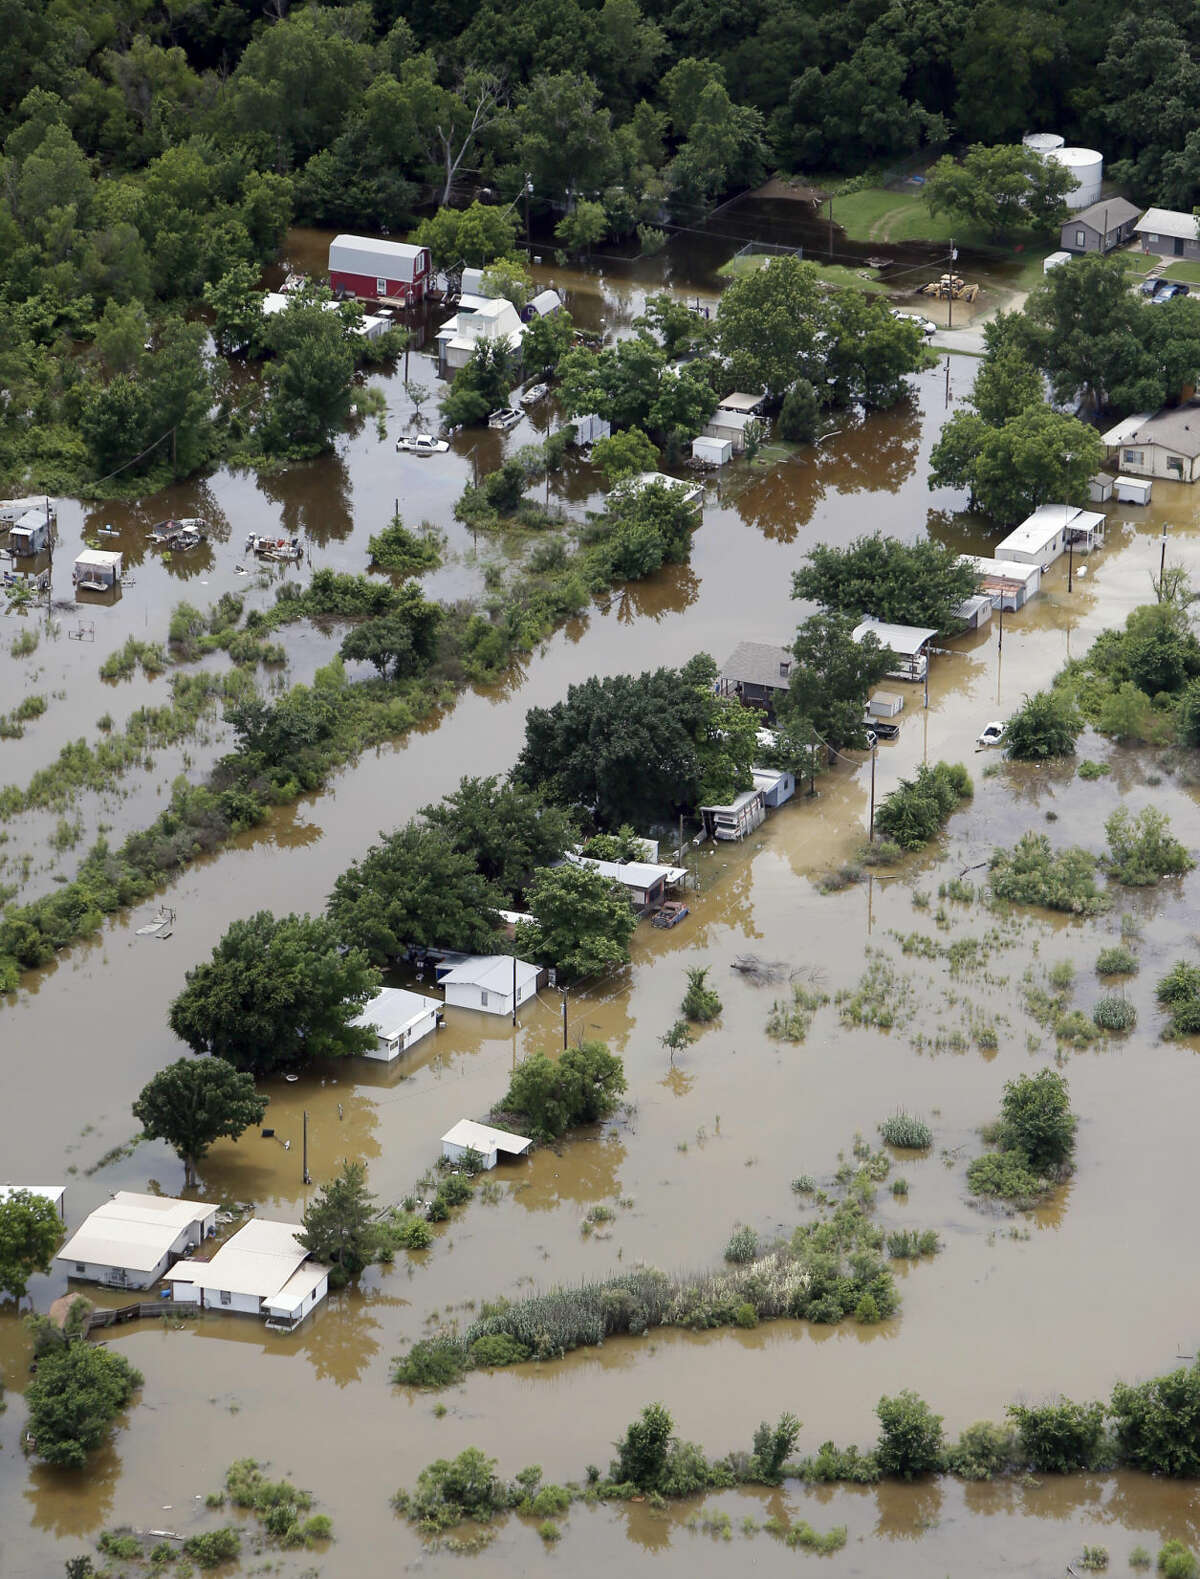 Flood waters from the Brazos River inundate a residential area, Friday, May 29, 2015, in Granbury, Texas. Floodwaters submerged Texas highways and threatened more homes Friday after another round of heavy rain added to the damage inflicted by storms. (AP Photo/Brandon Wade)